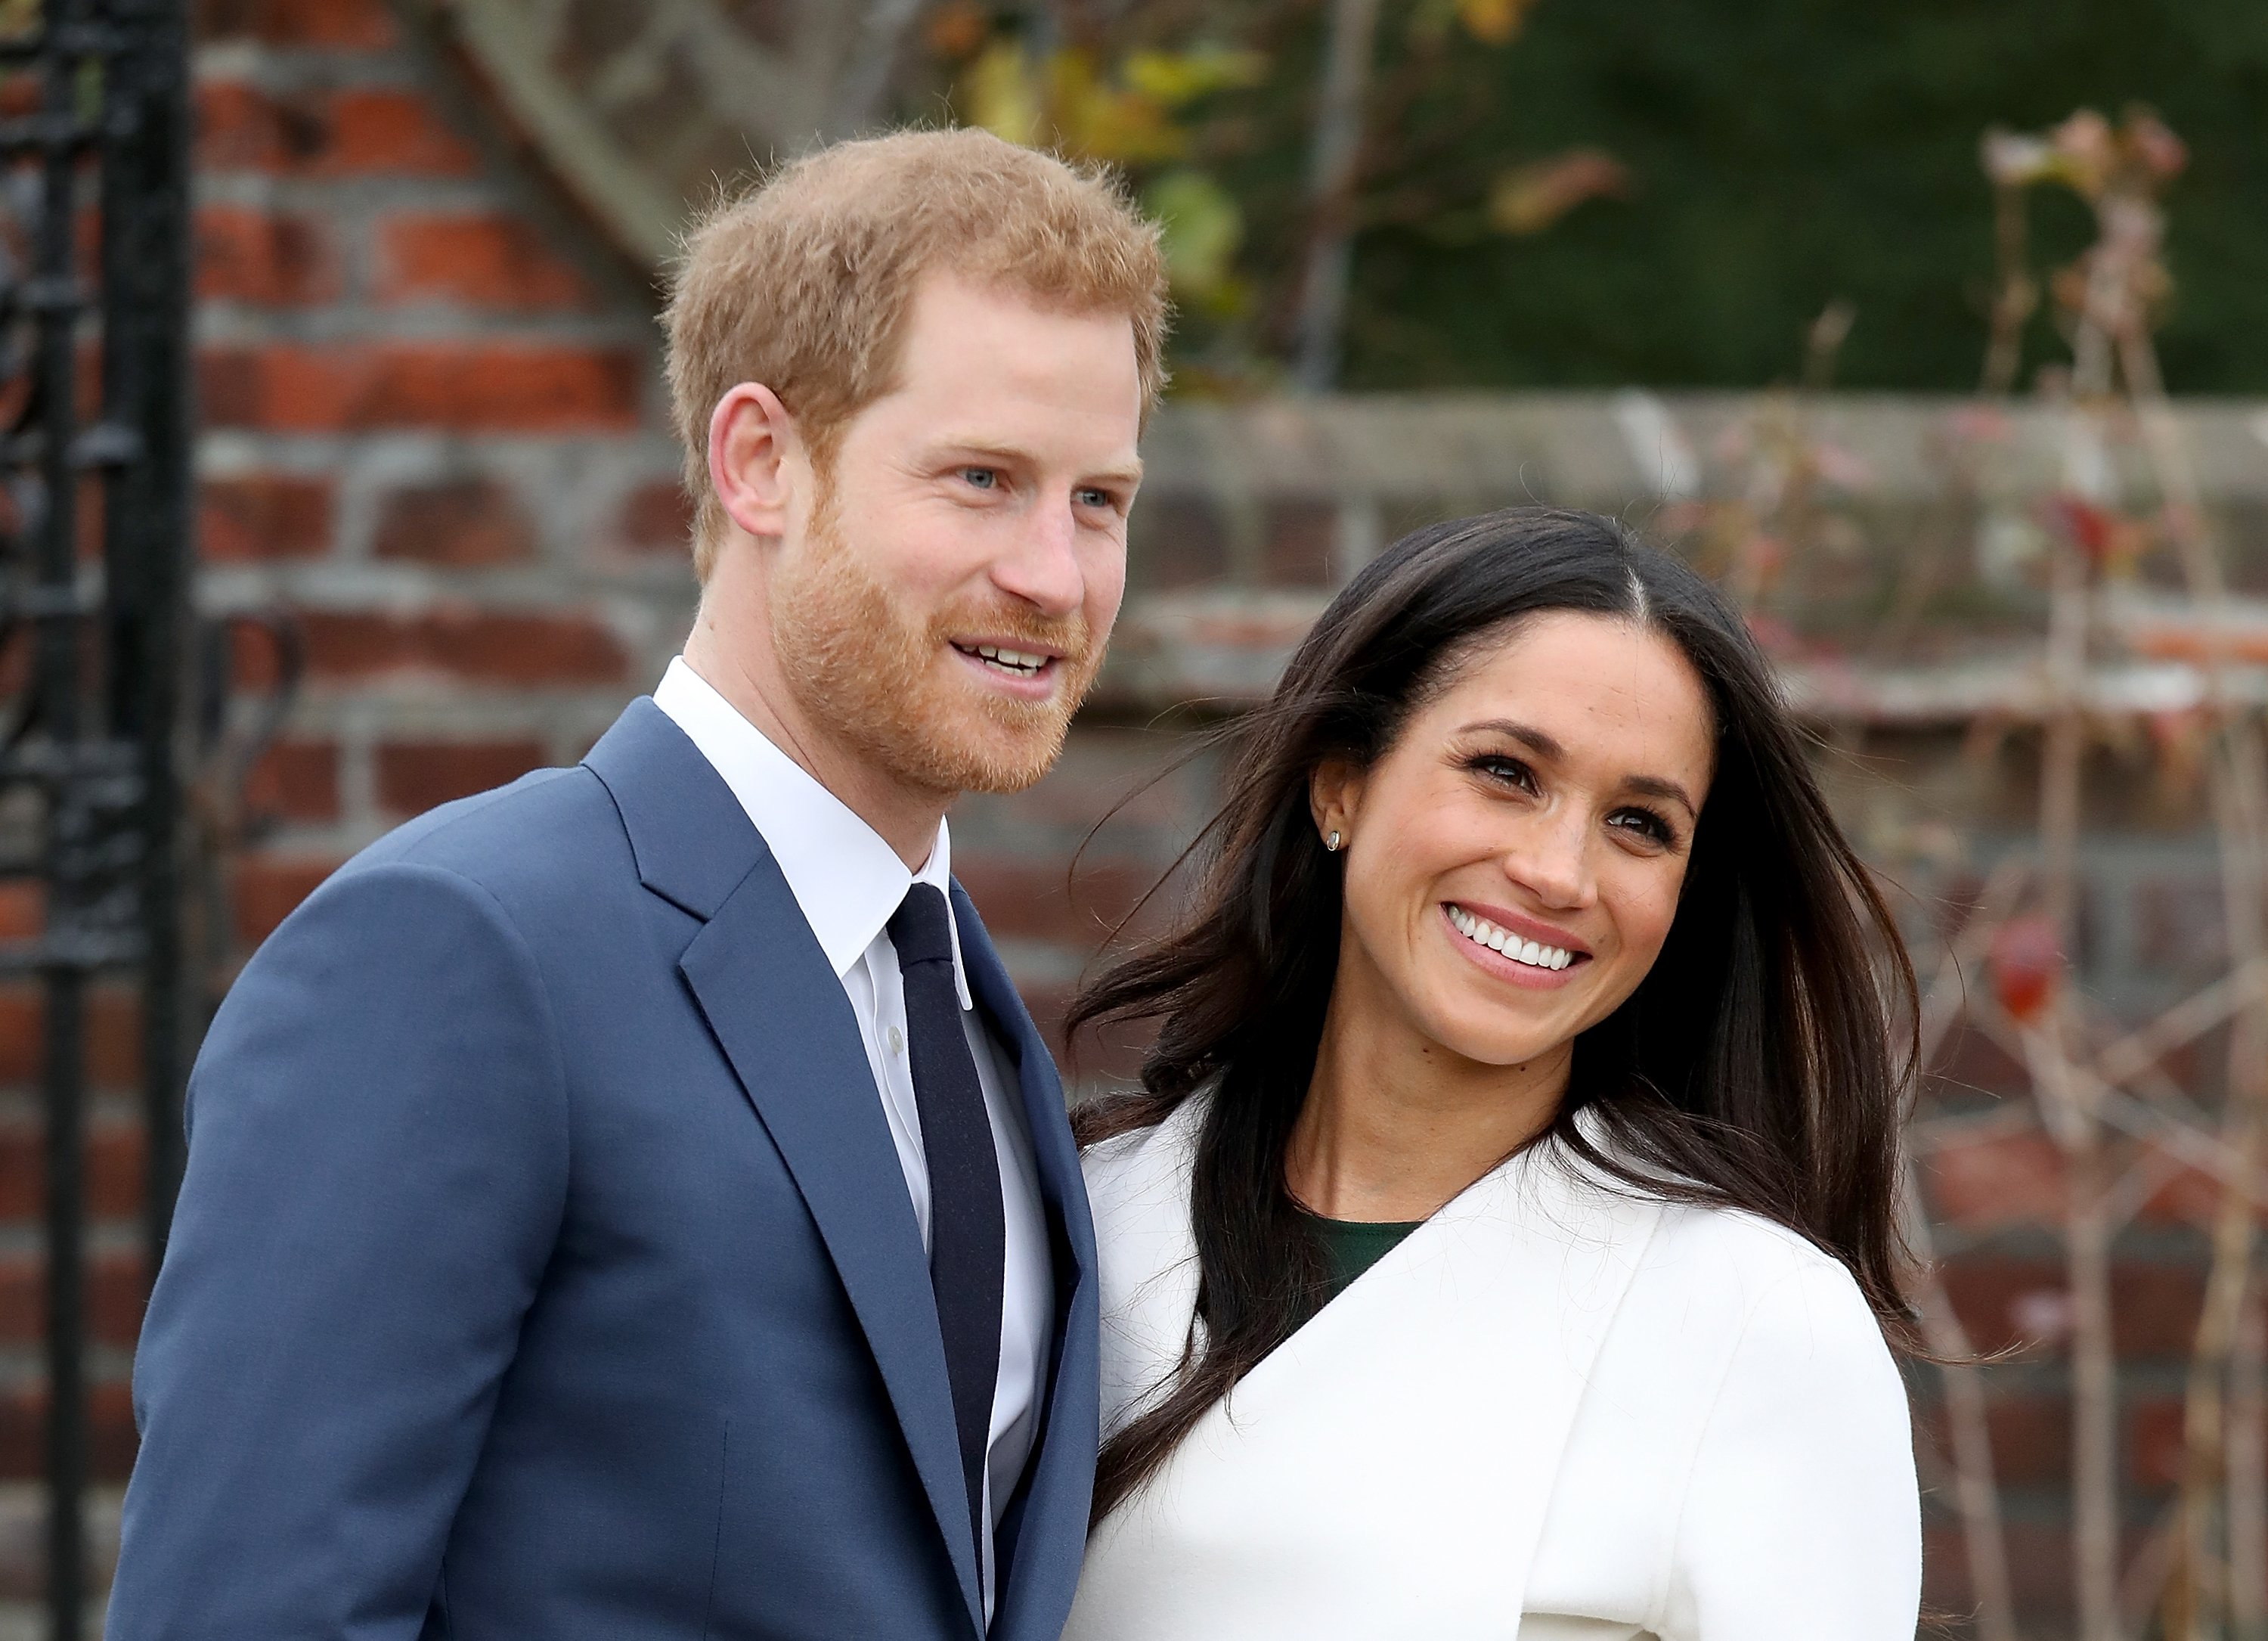 Prince Harry and actress Meghan Markle during an official photocall to announce their engagement at The Sunken Gardens at Kensington Palace on November 27, 2017 in London, England. | Source: Getty Images